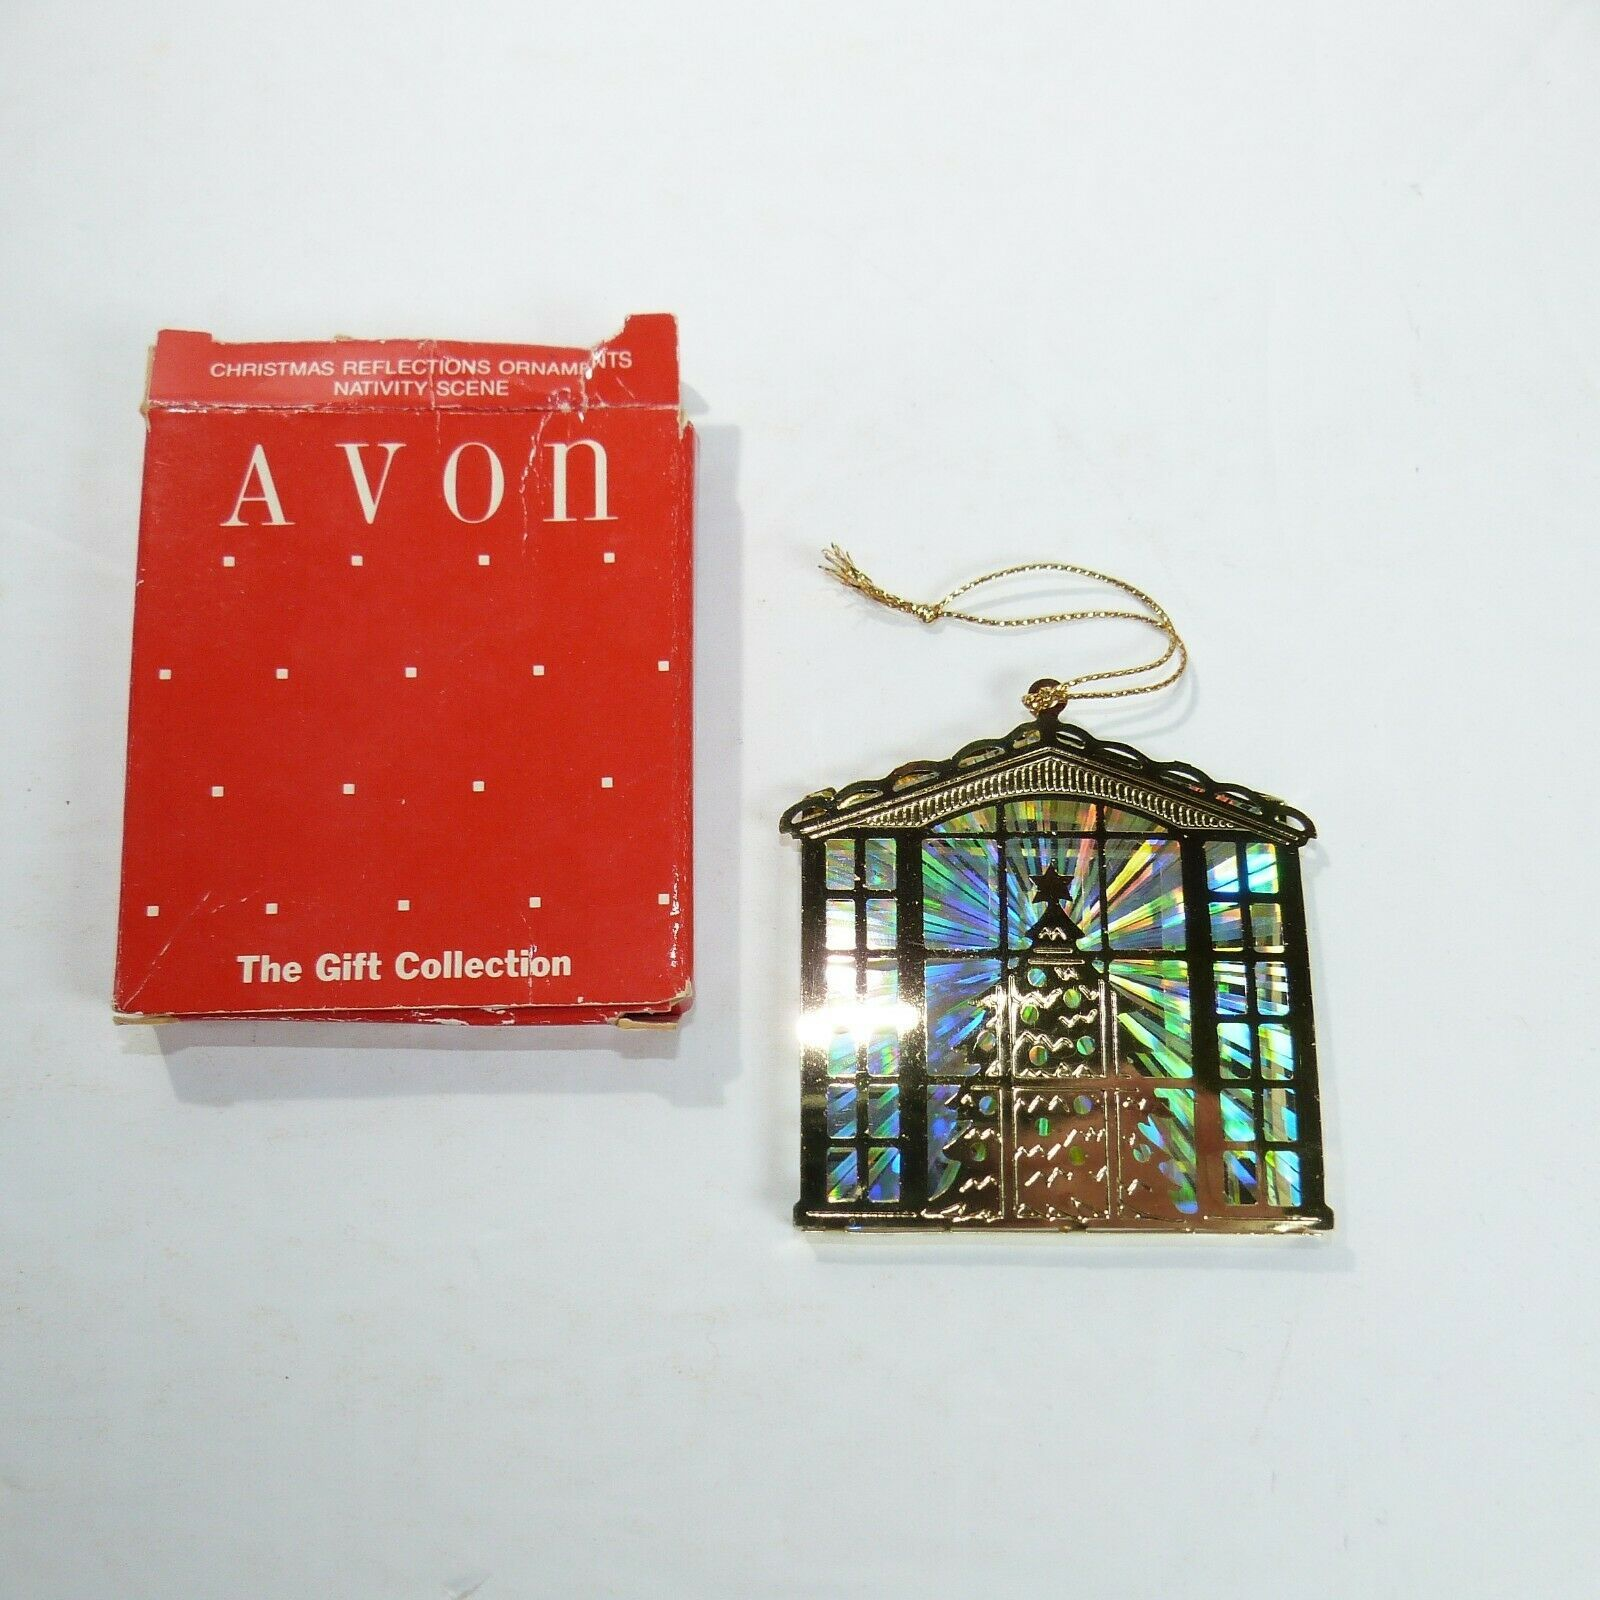 Vintage Avon The Gift Collection CHRISTMAS REFLECTION ORNAMENTS Tree scene